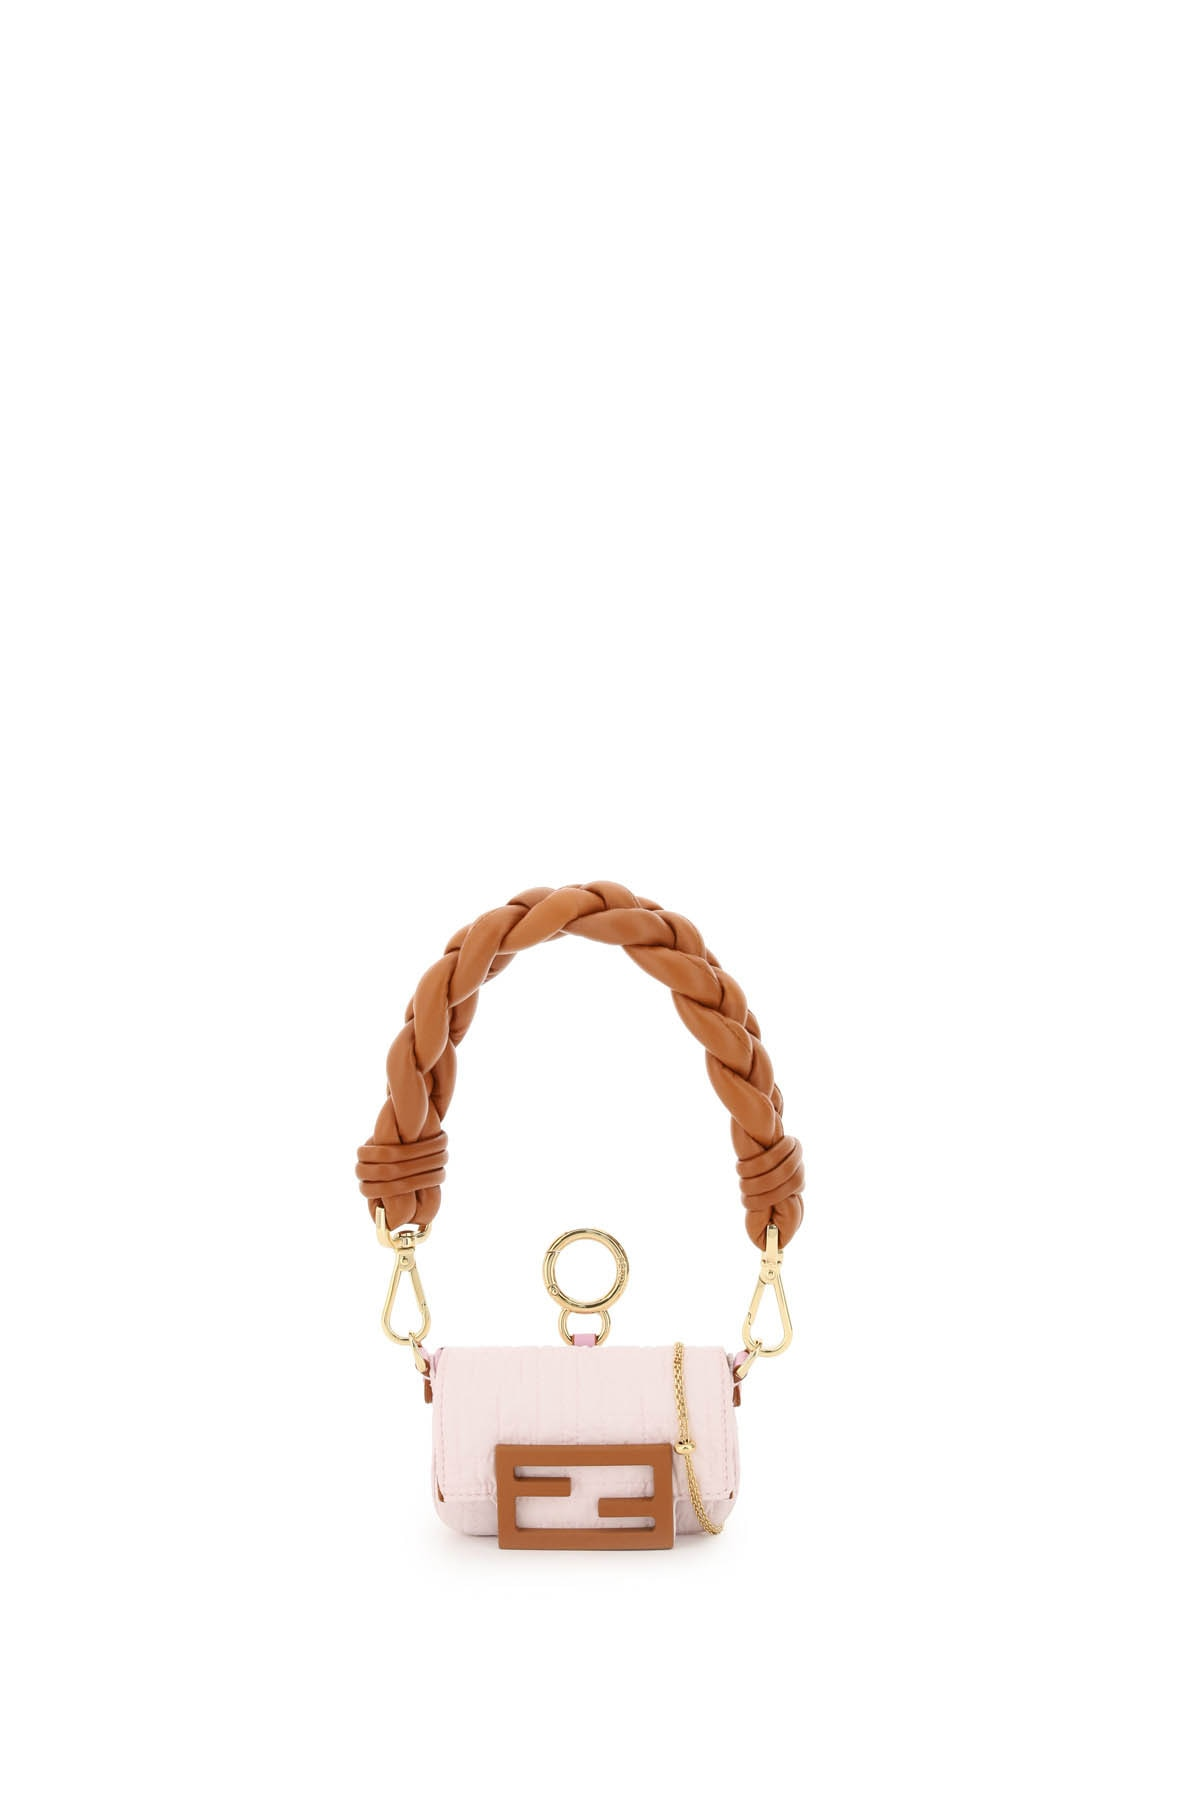 FENDI 0 OS Pink, Brown Technical, Leather